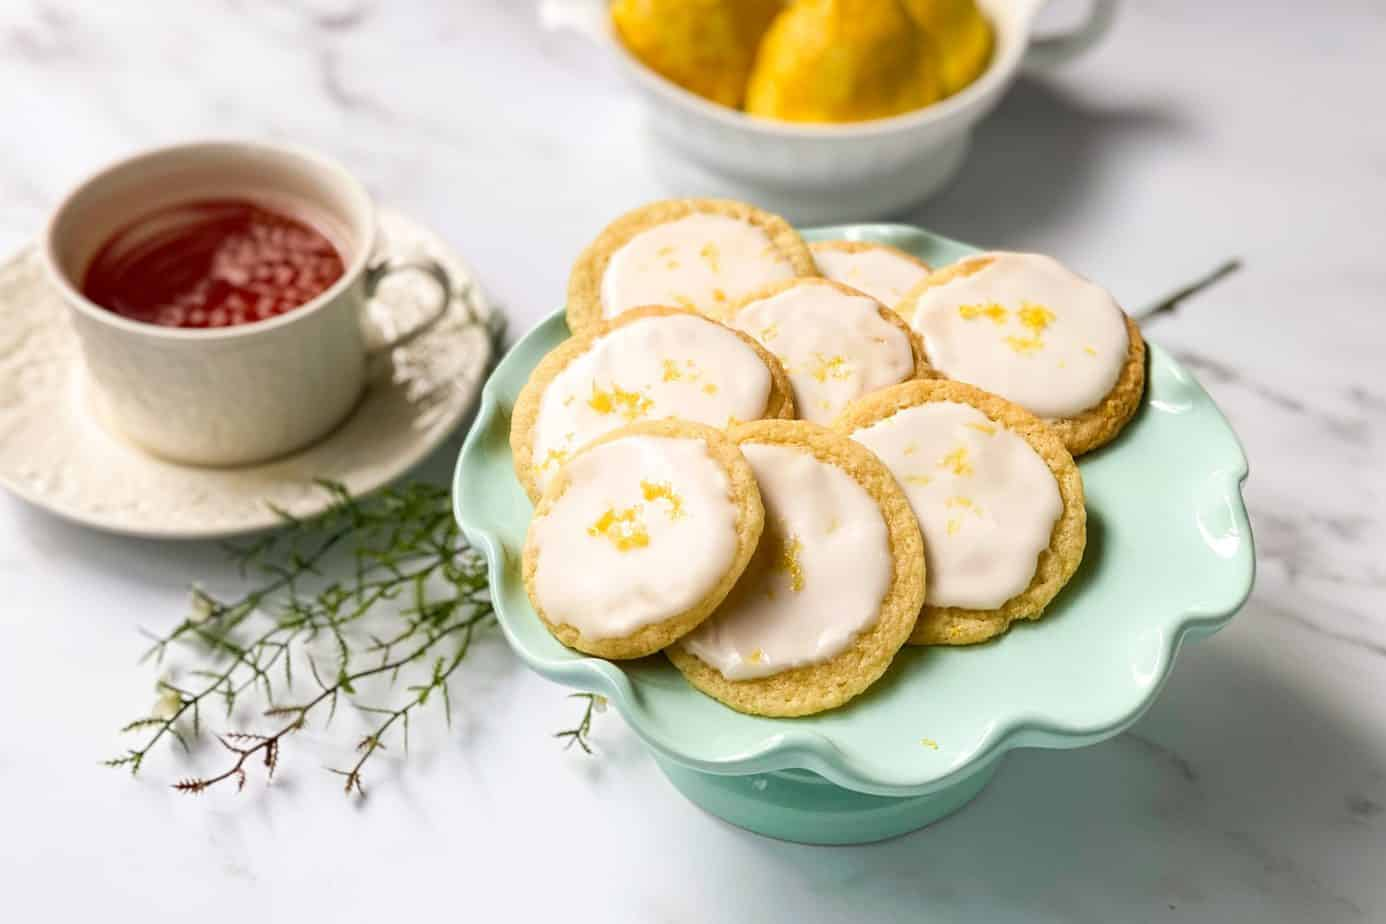 View of lemon tea cookies with sliced lemon and a cup of tea